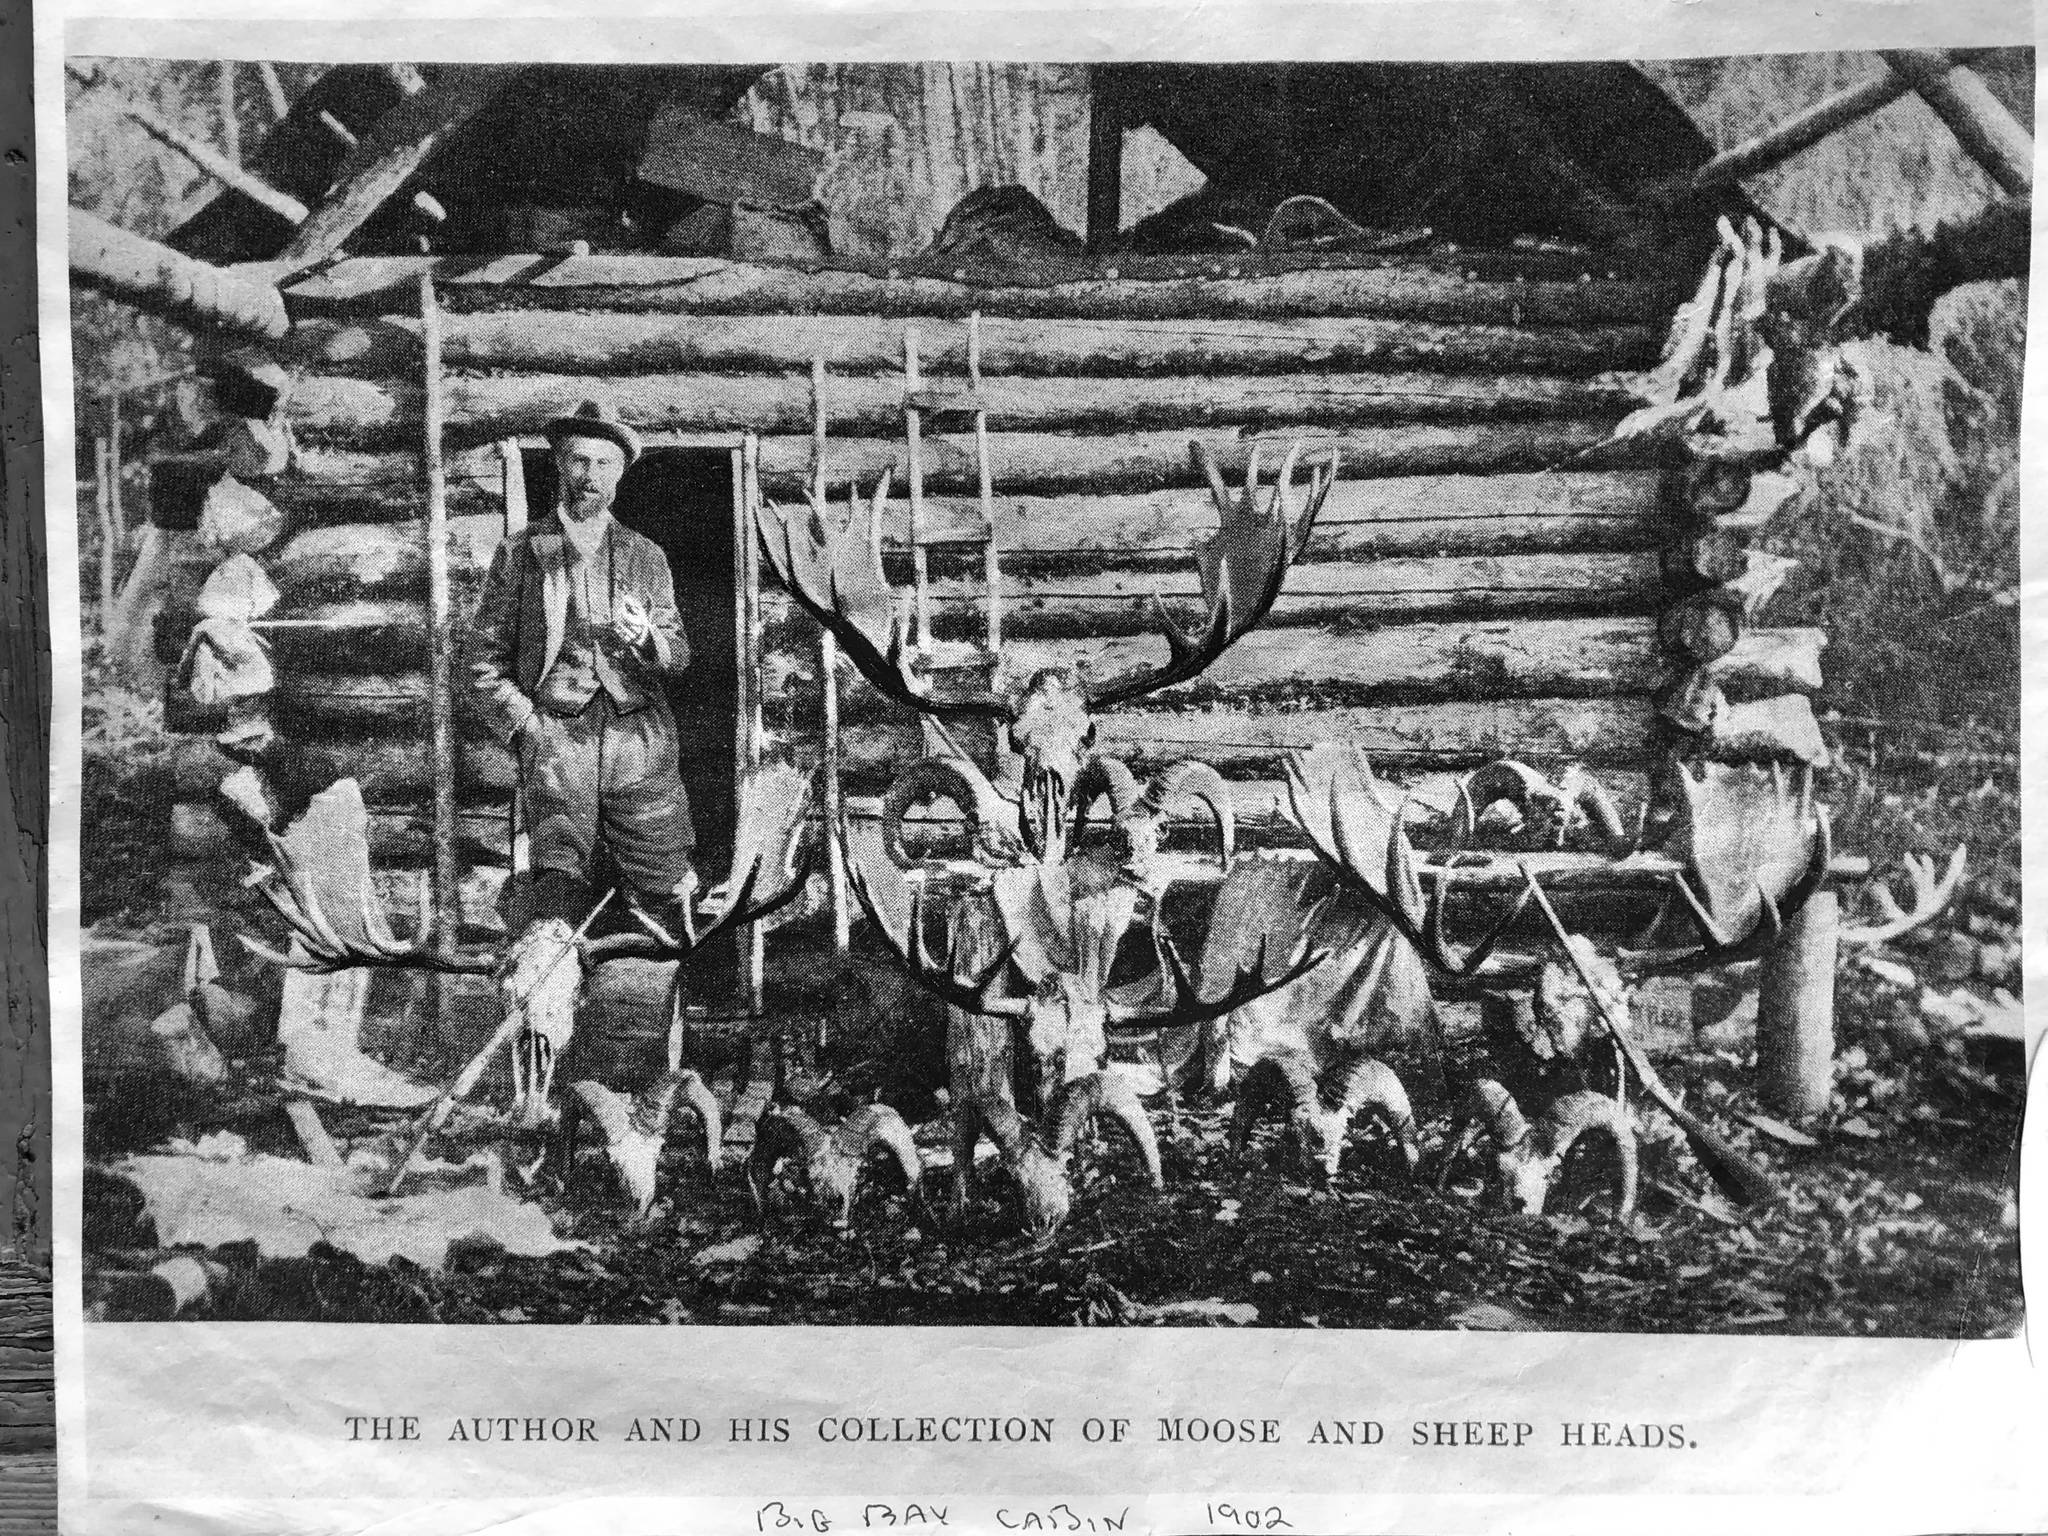 The Big Bay Cabin today looks just like it did in 1902, but without the skulls of Dall sheep and moose. (Photo provided by refuge)